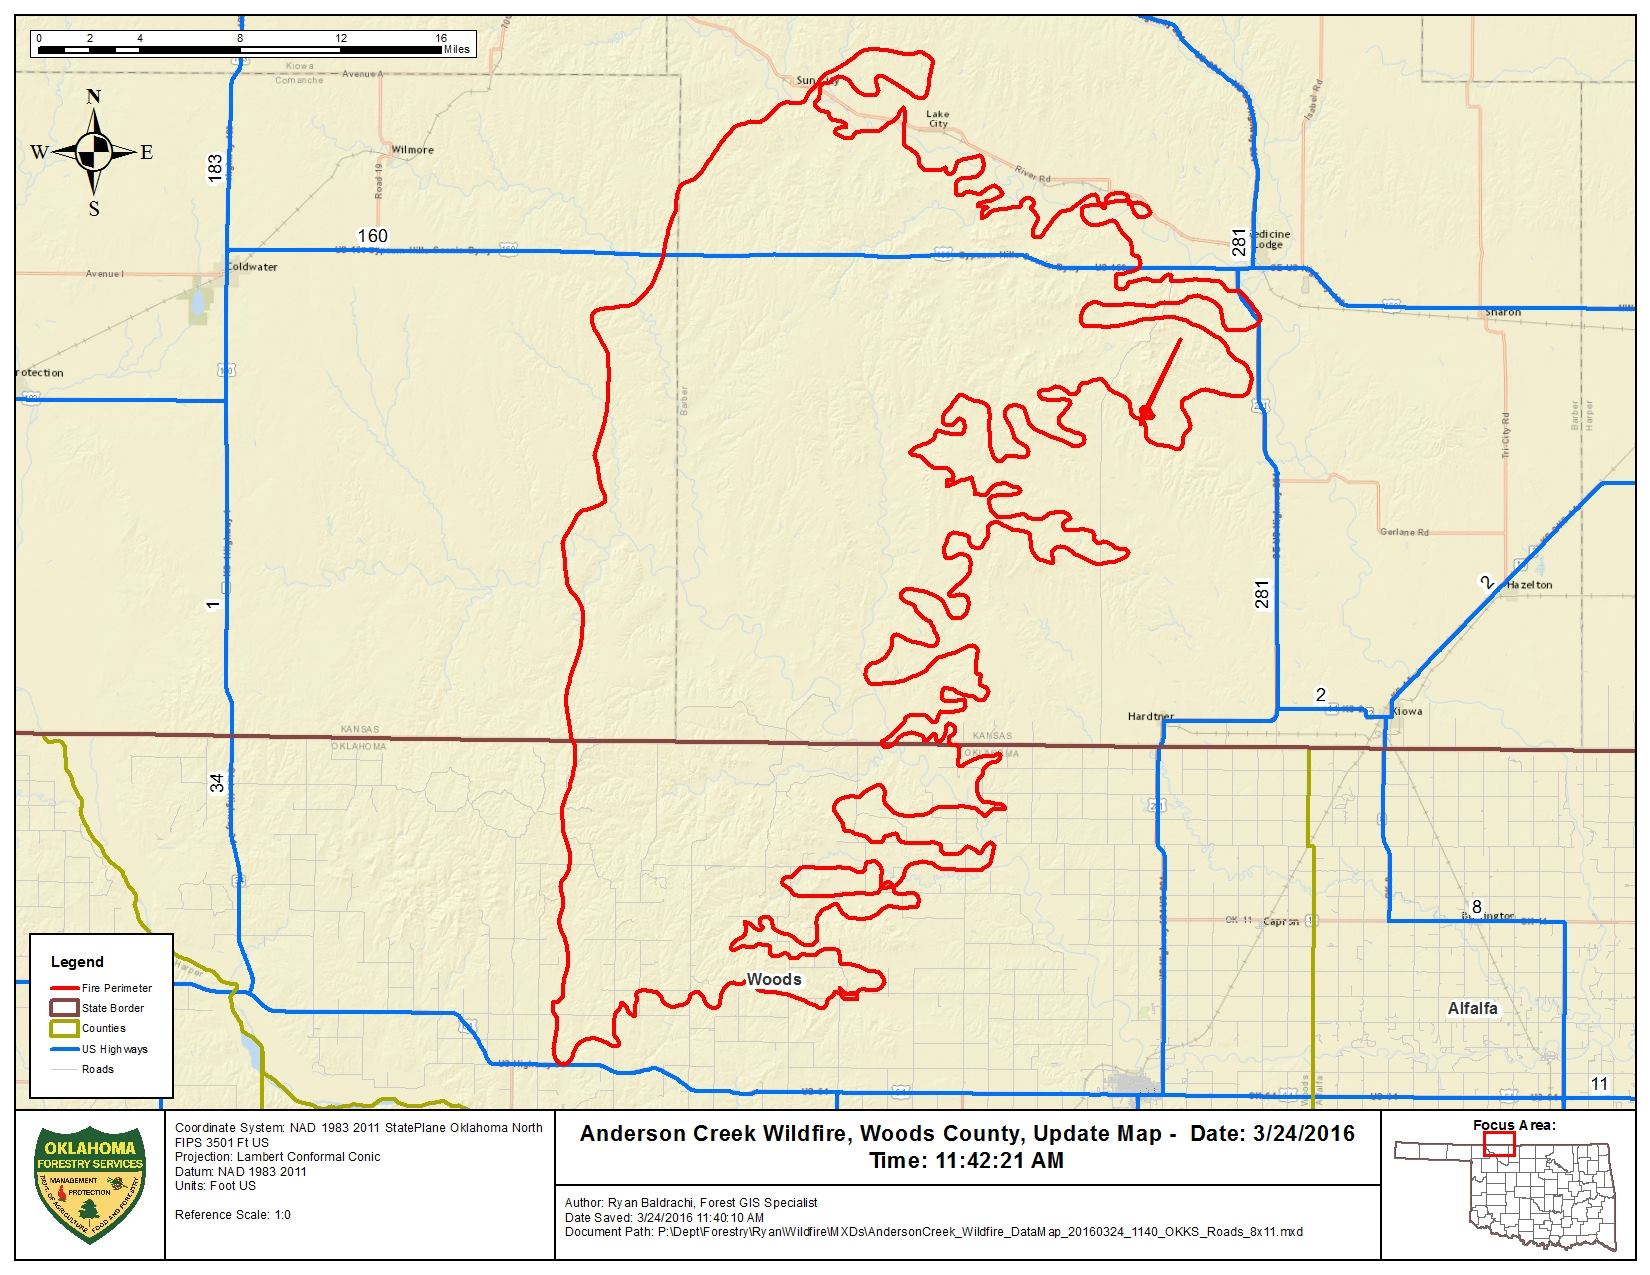 Anderson Creek Fire perimeter map [click to enlarge]